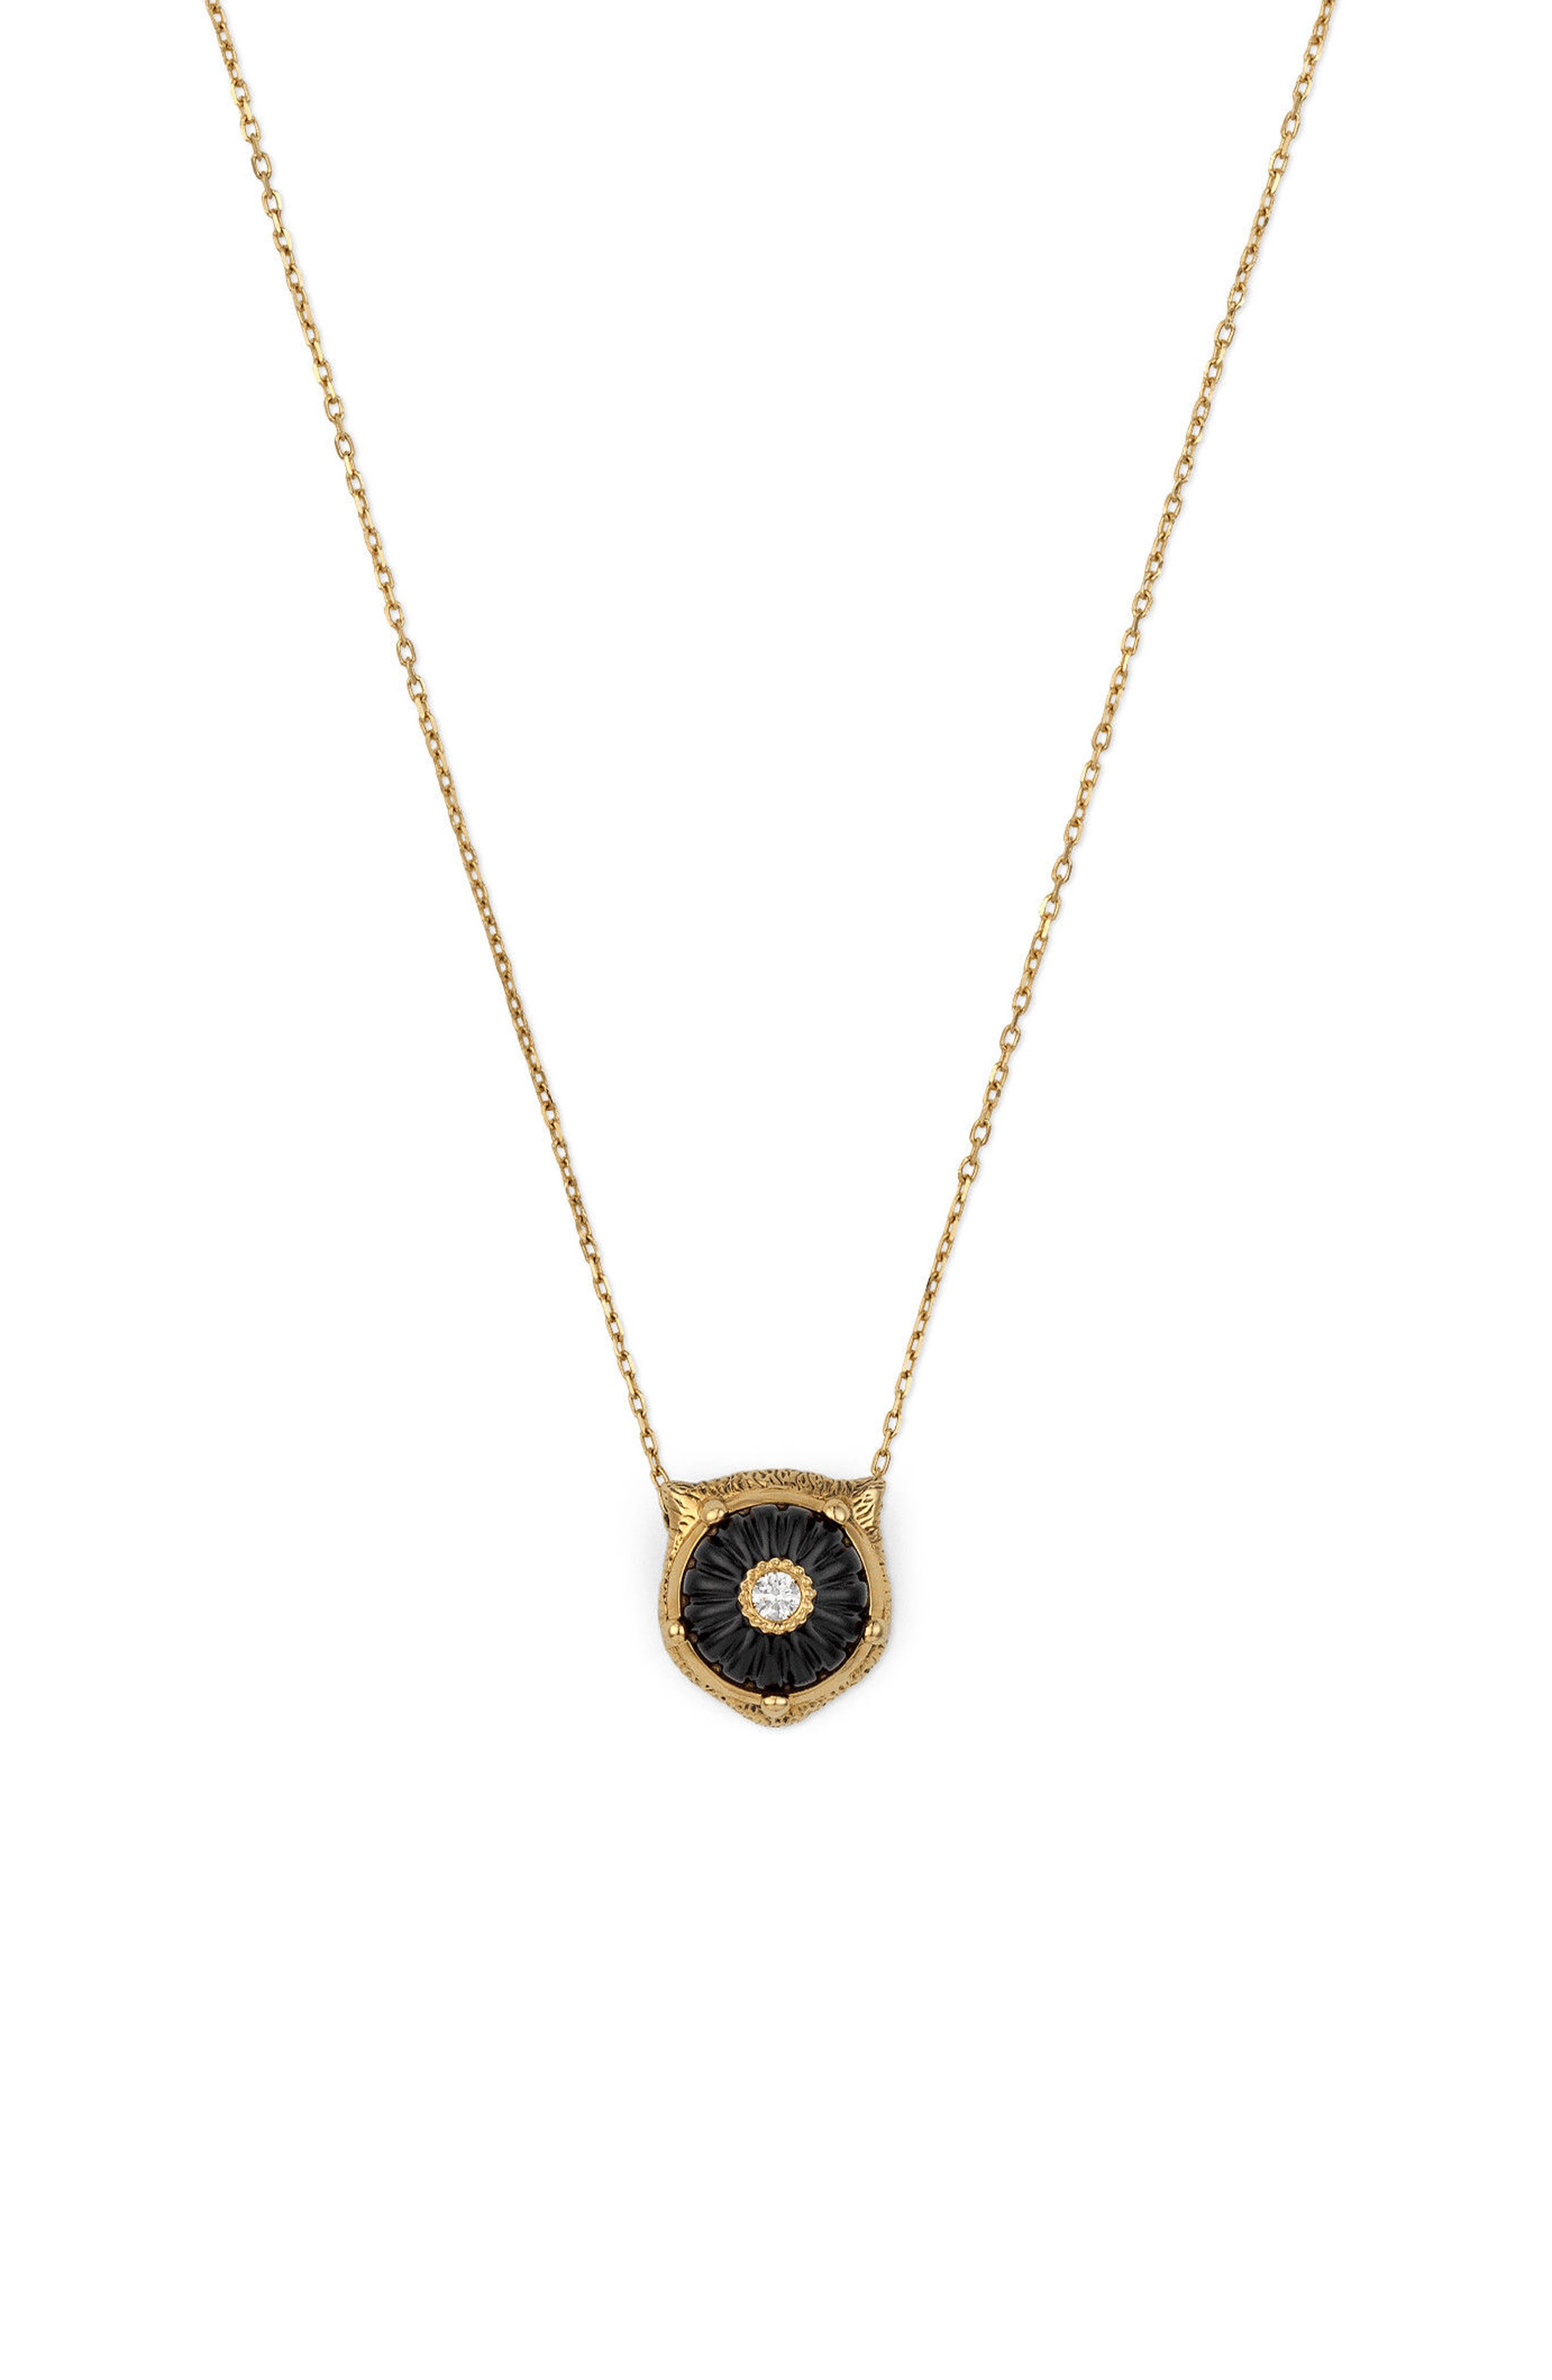 Gucci Feline Head Diamond & Onyx Pendant Necklace